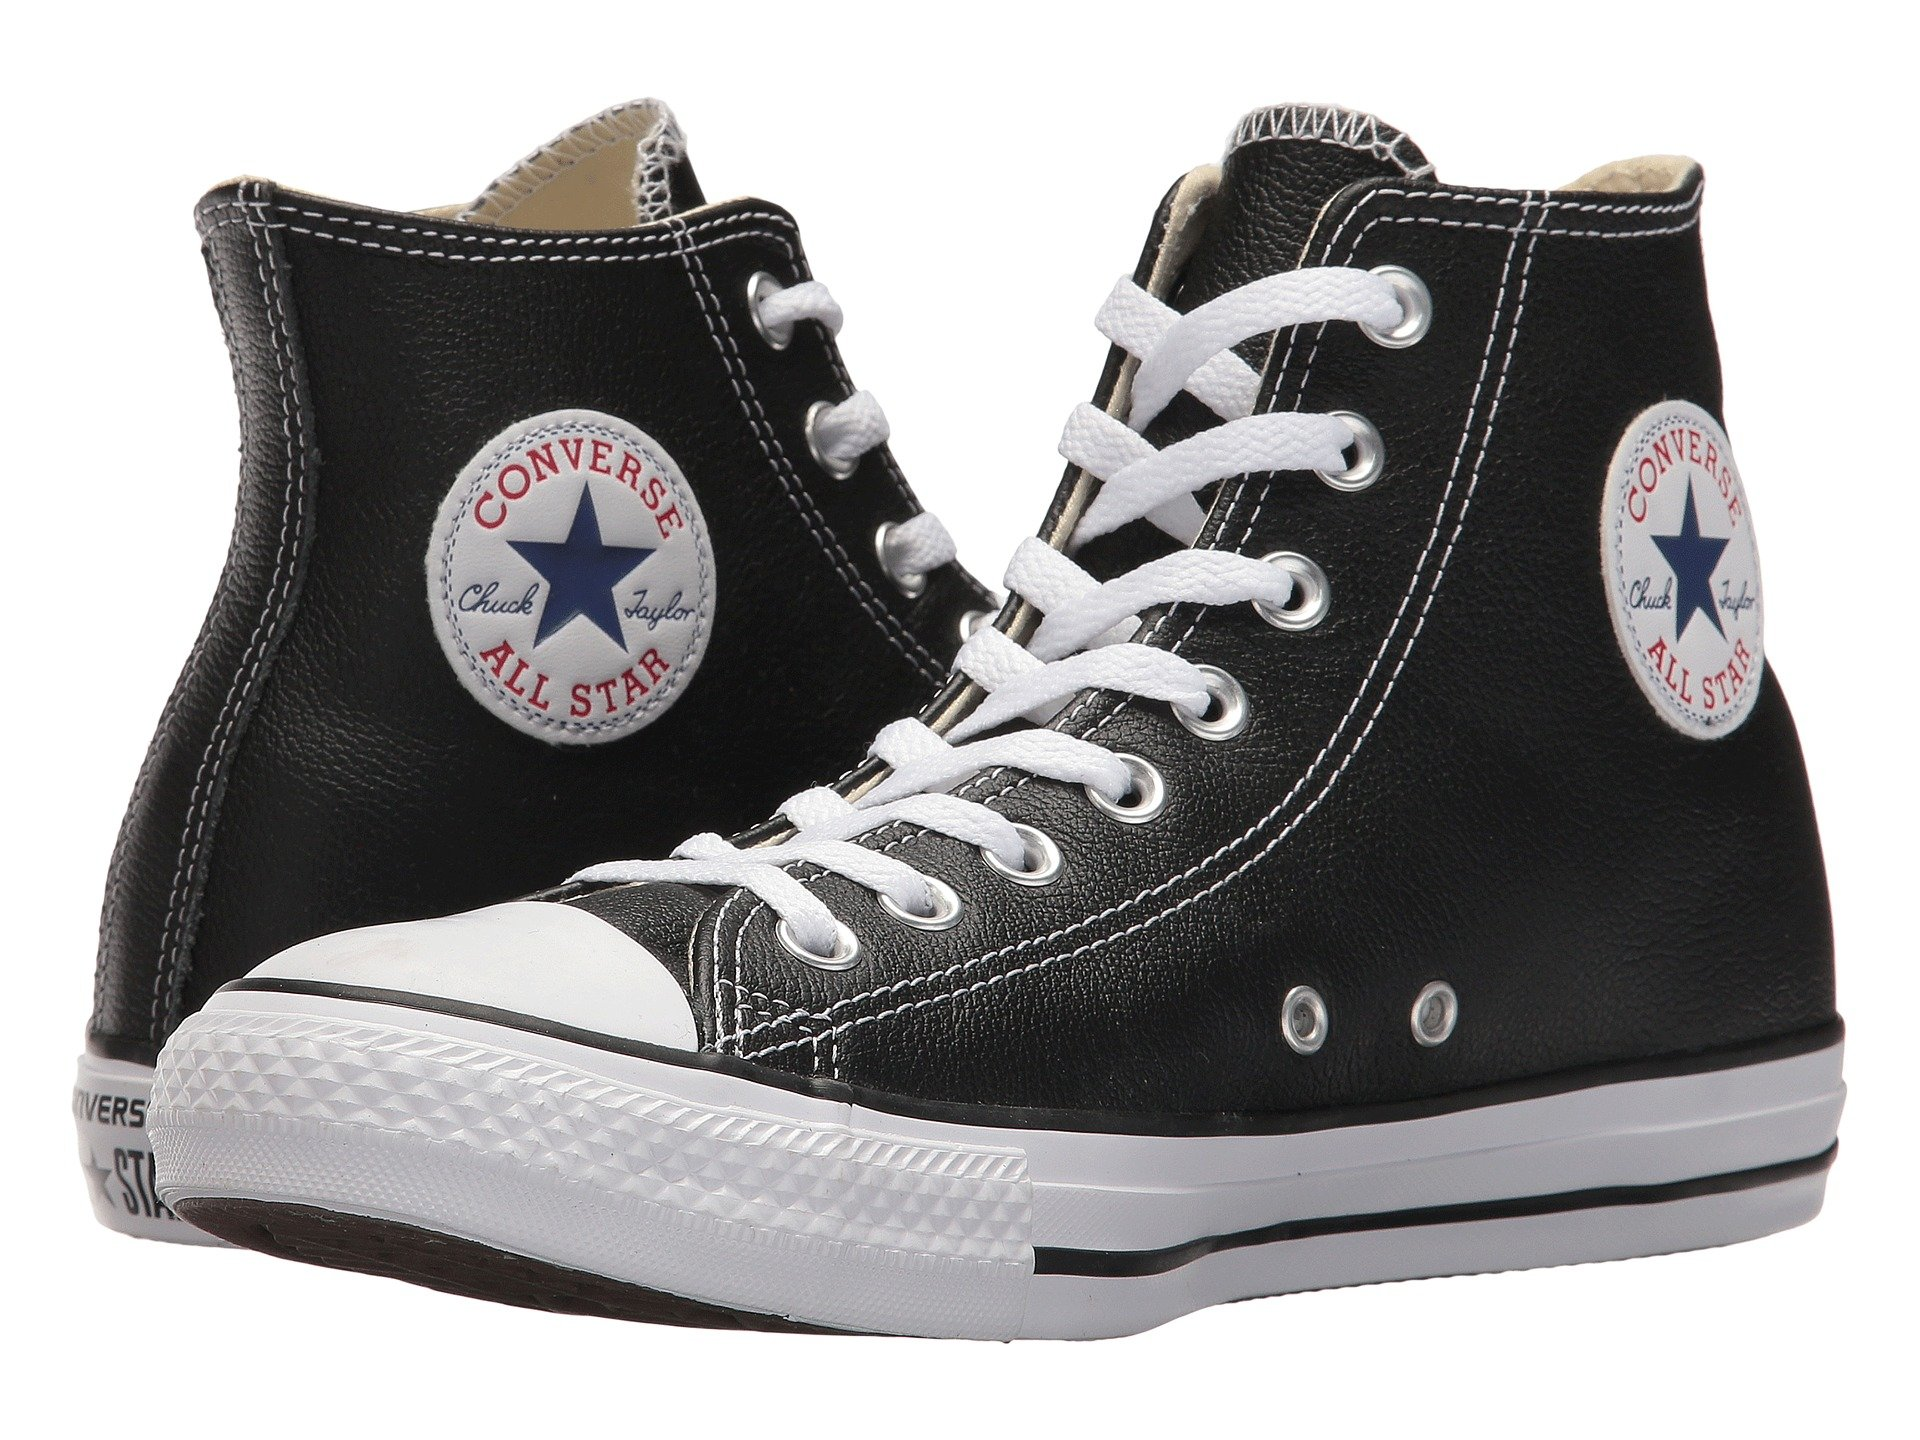 696bfc23b906 Converse kids chuck taylor all star core hi toddler youth chocolate ...